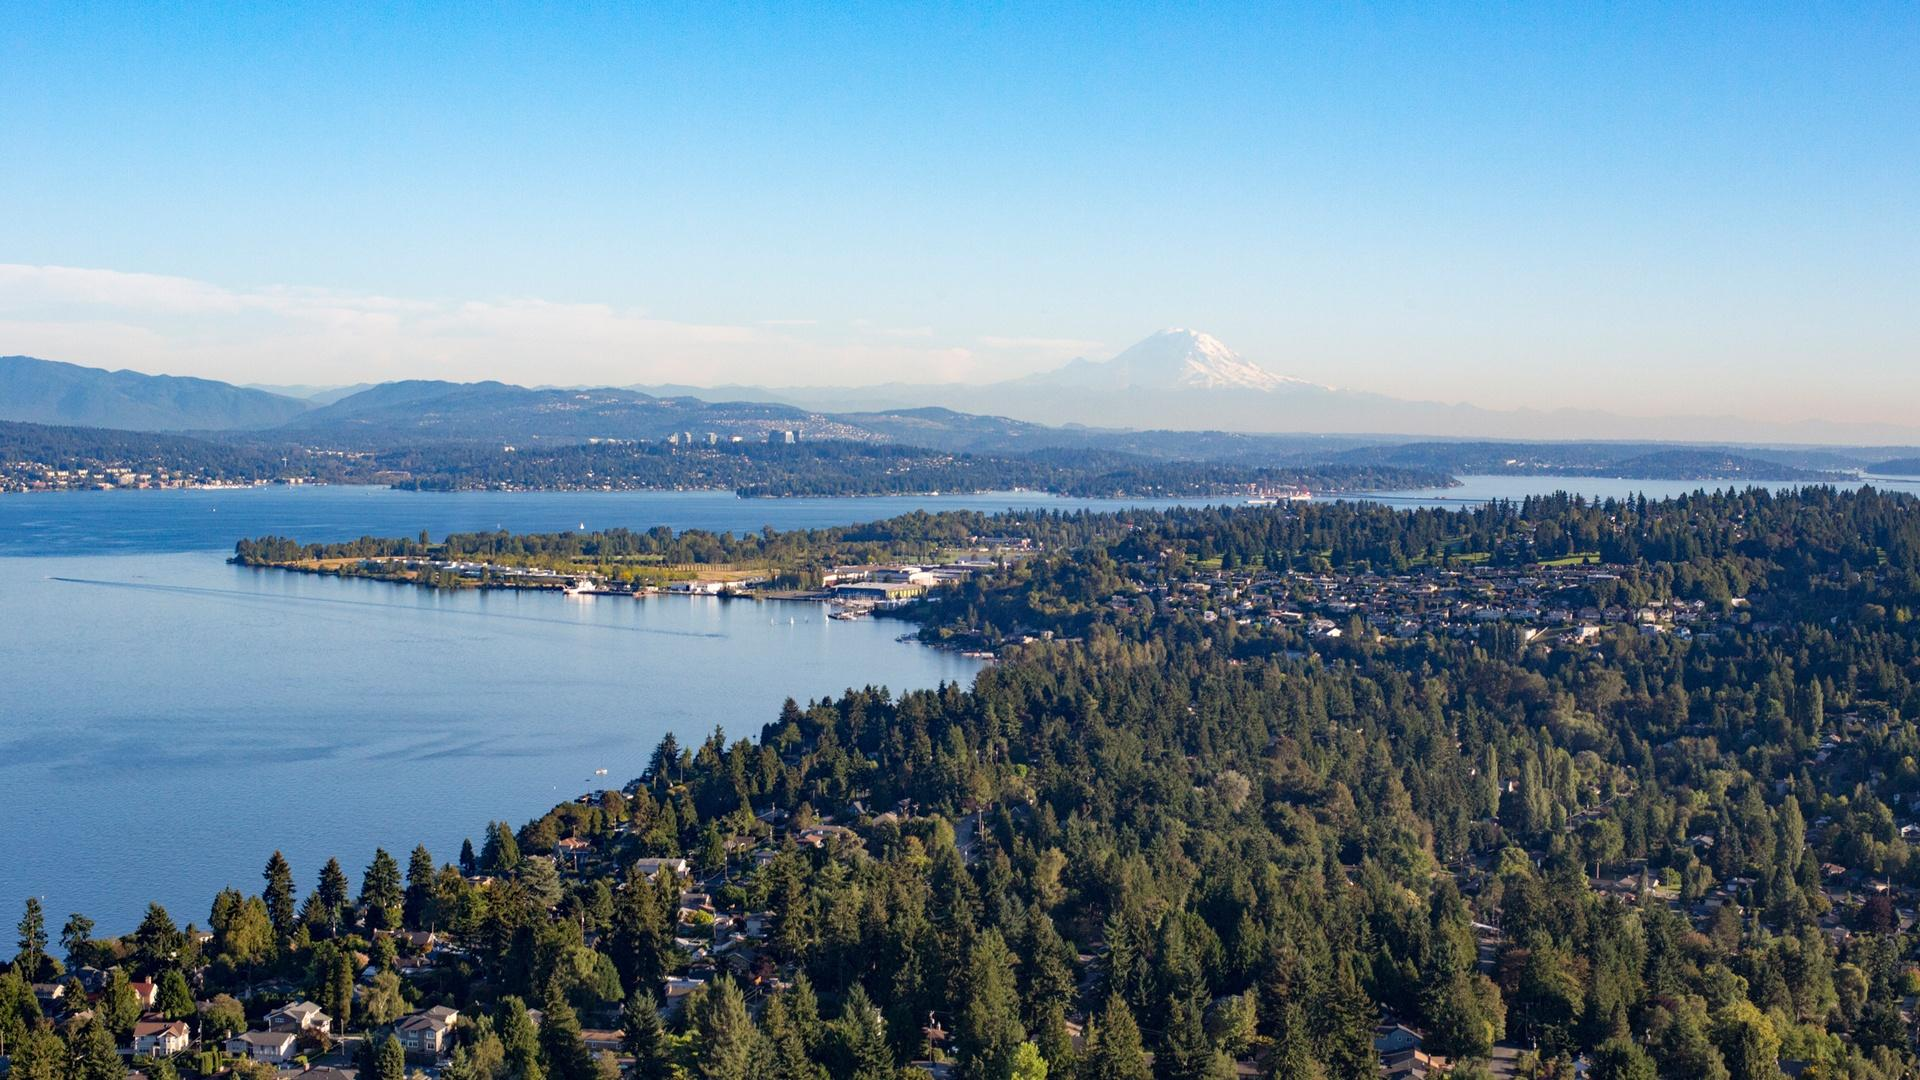 Seattle shoreline with Lake Washington and Mt. Rainier